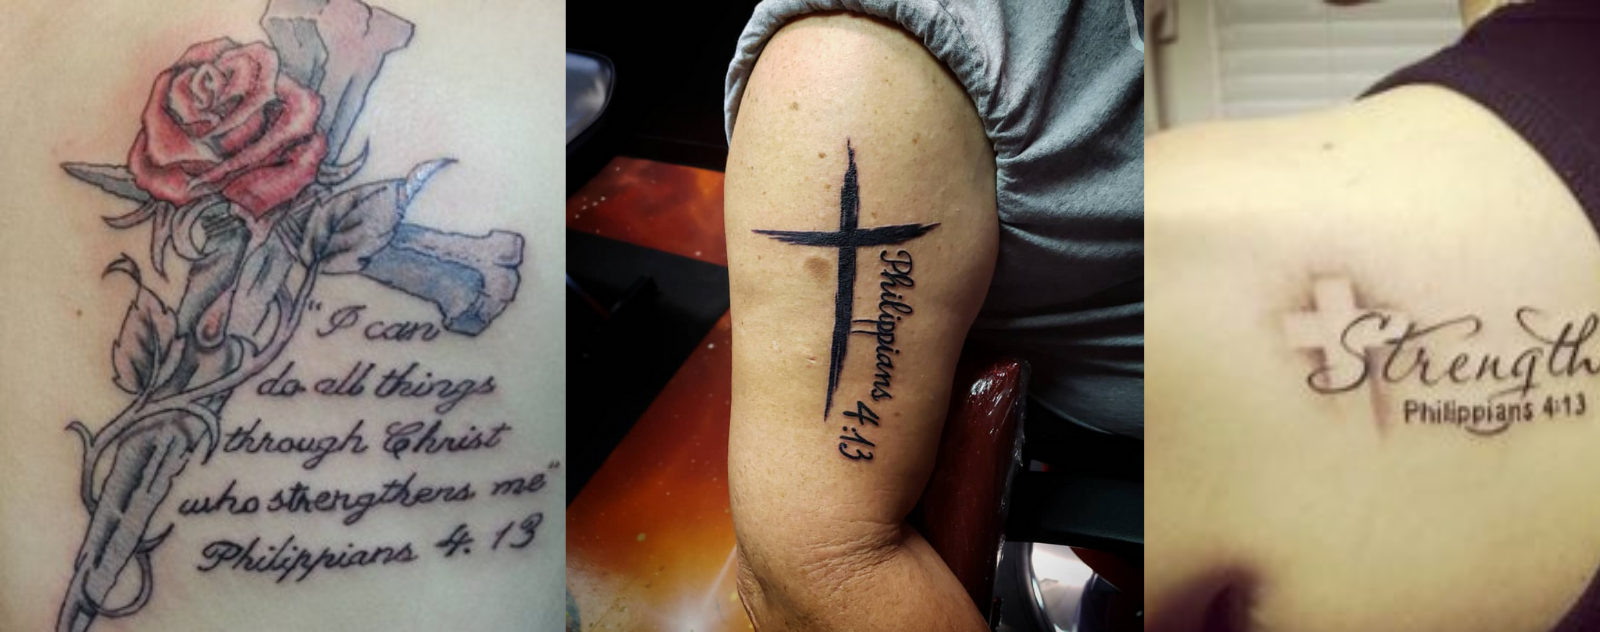 philippians-4-13-tattoo-with-cross-15